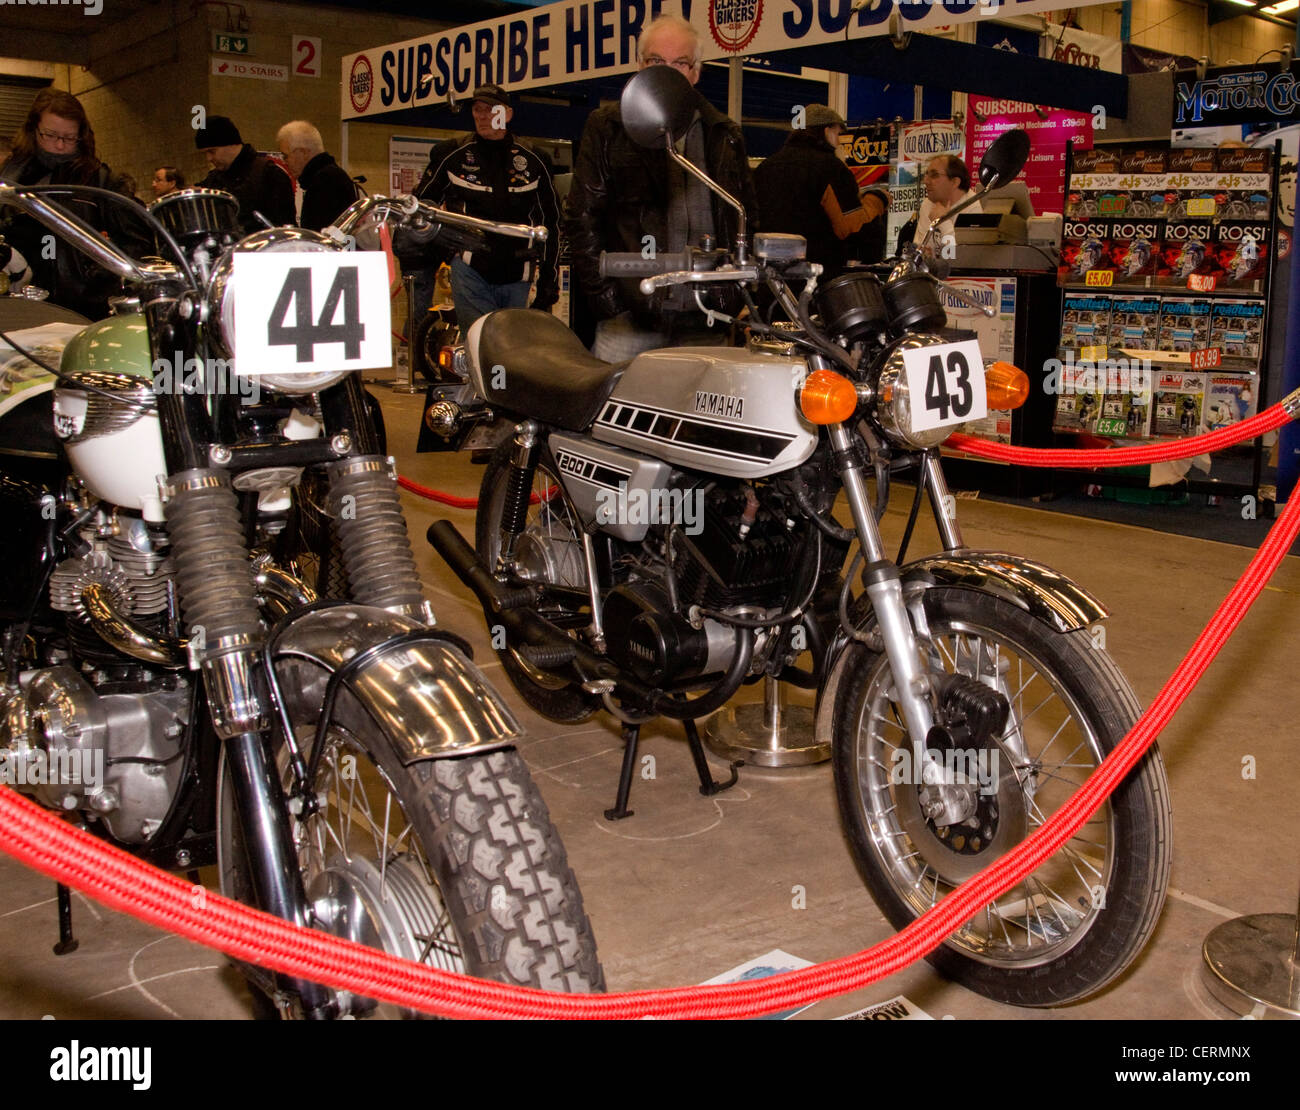 Yamaha RD200 at the Classic bike show. - Stock Image